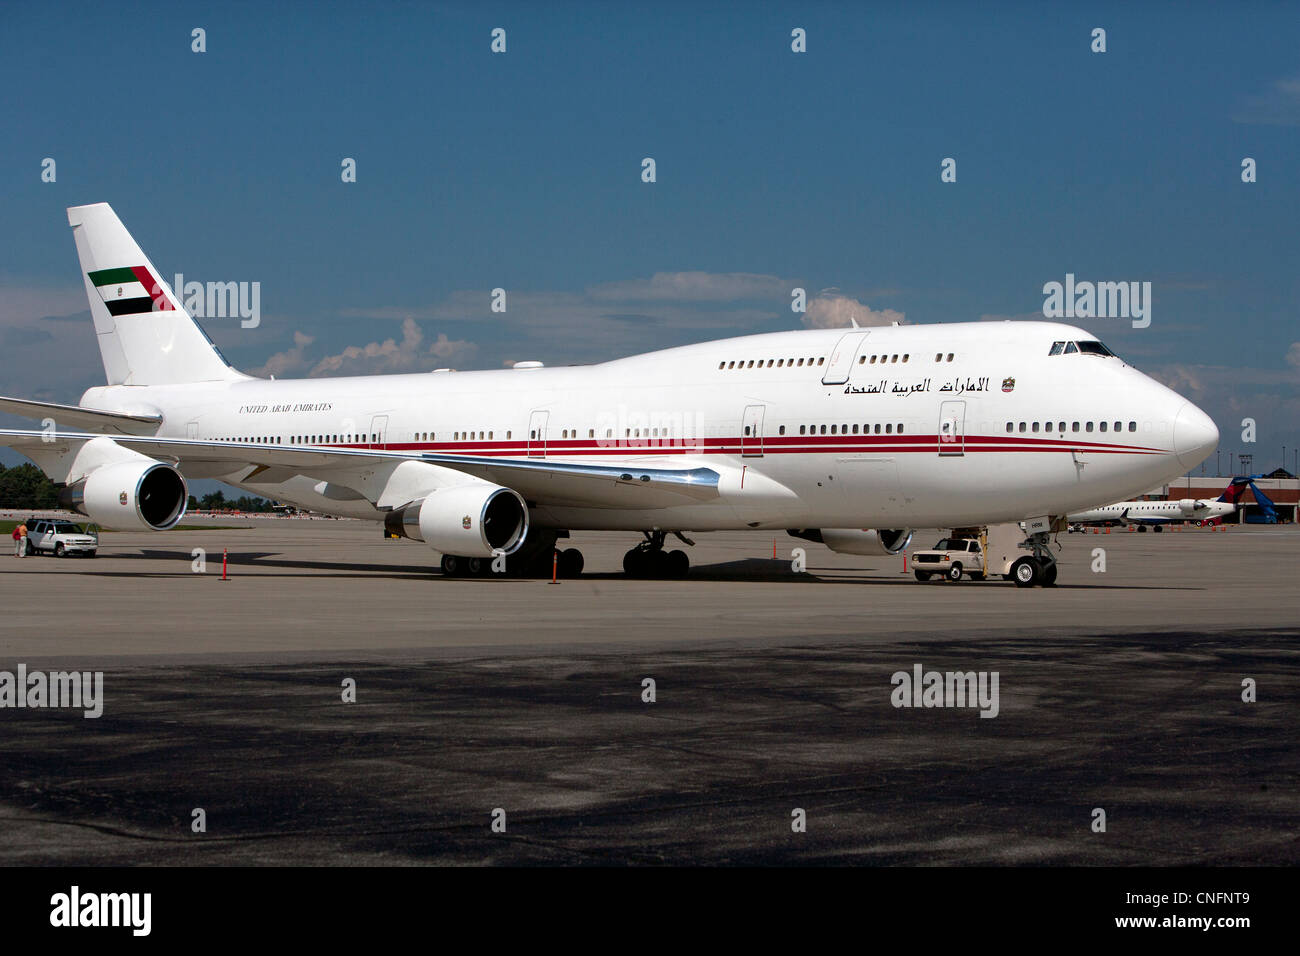 Boeing 747 of Sheik Mohammed Al Maktoum Blue Grass Airport, LEX, Lexington, Kentucky - Stock Image